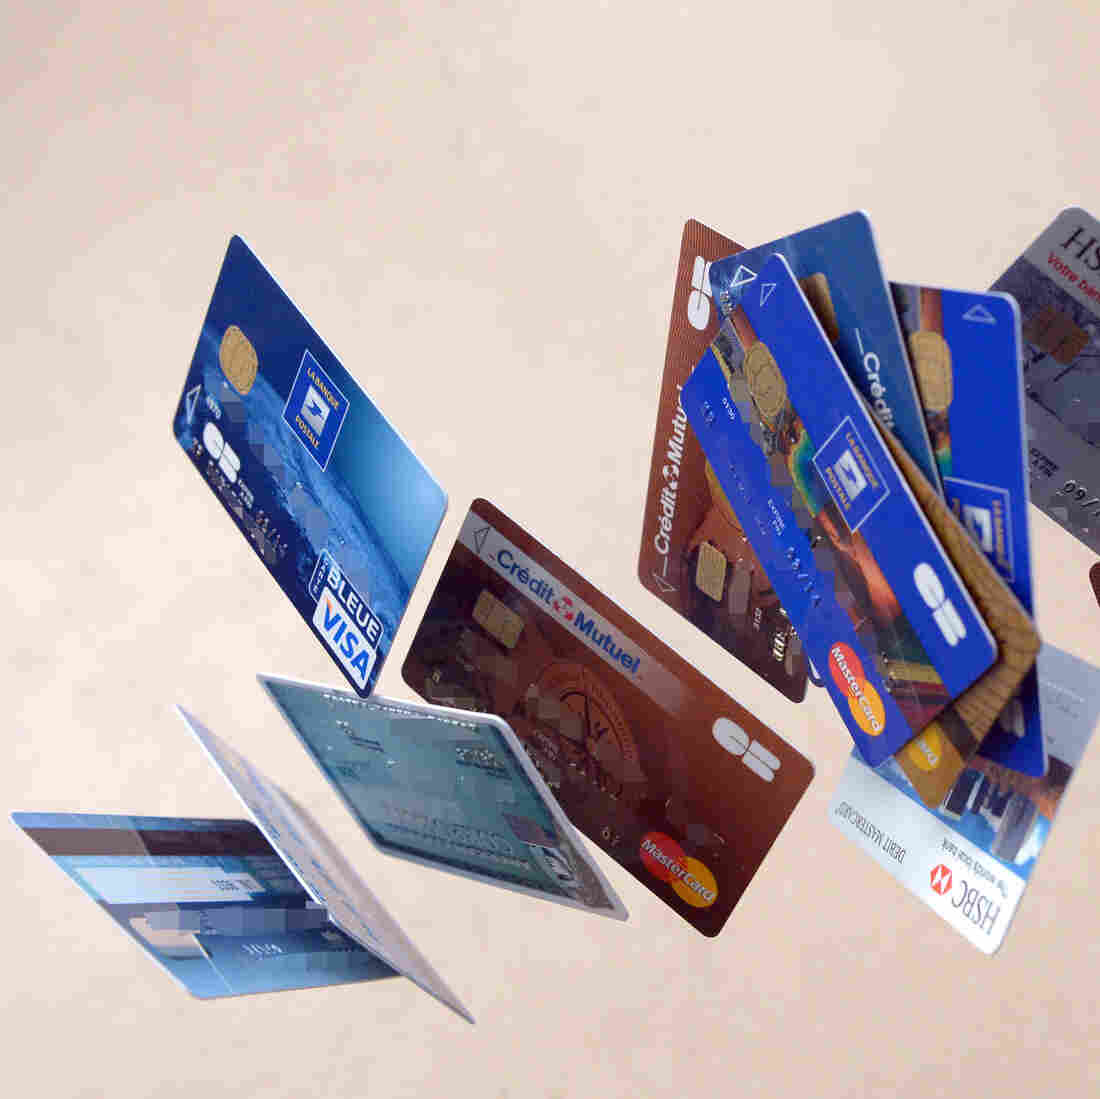 Visa and MasterCard have formed an industry-wide group to improve payment security.